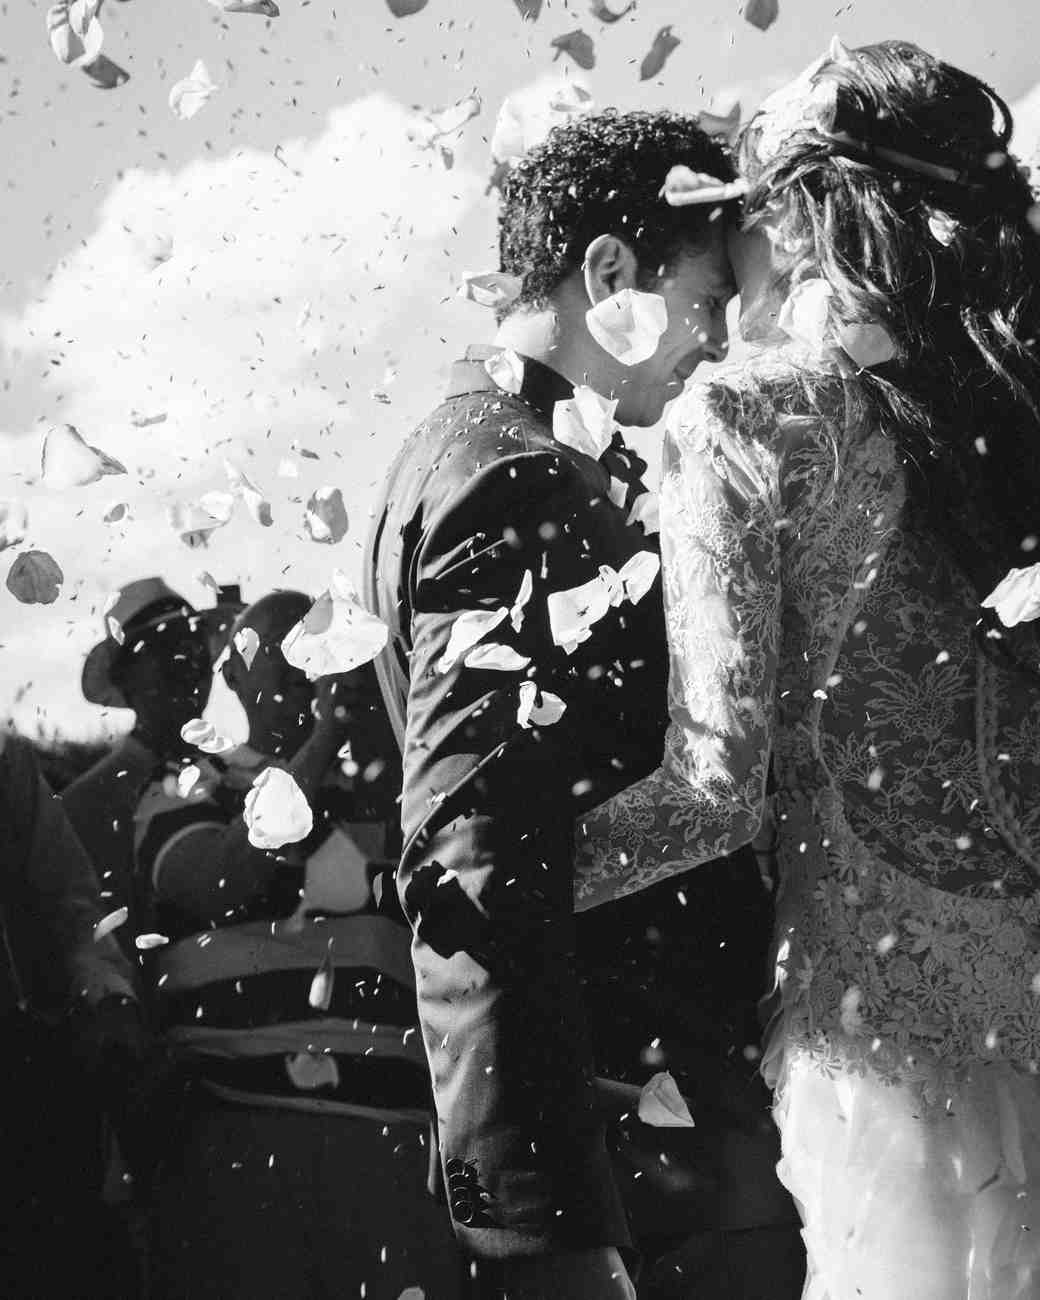 confetti-toss-wedding-photo-amaranth-photography-0716.jpg